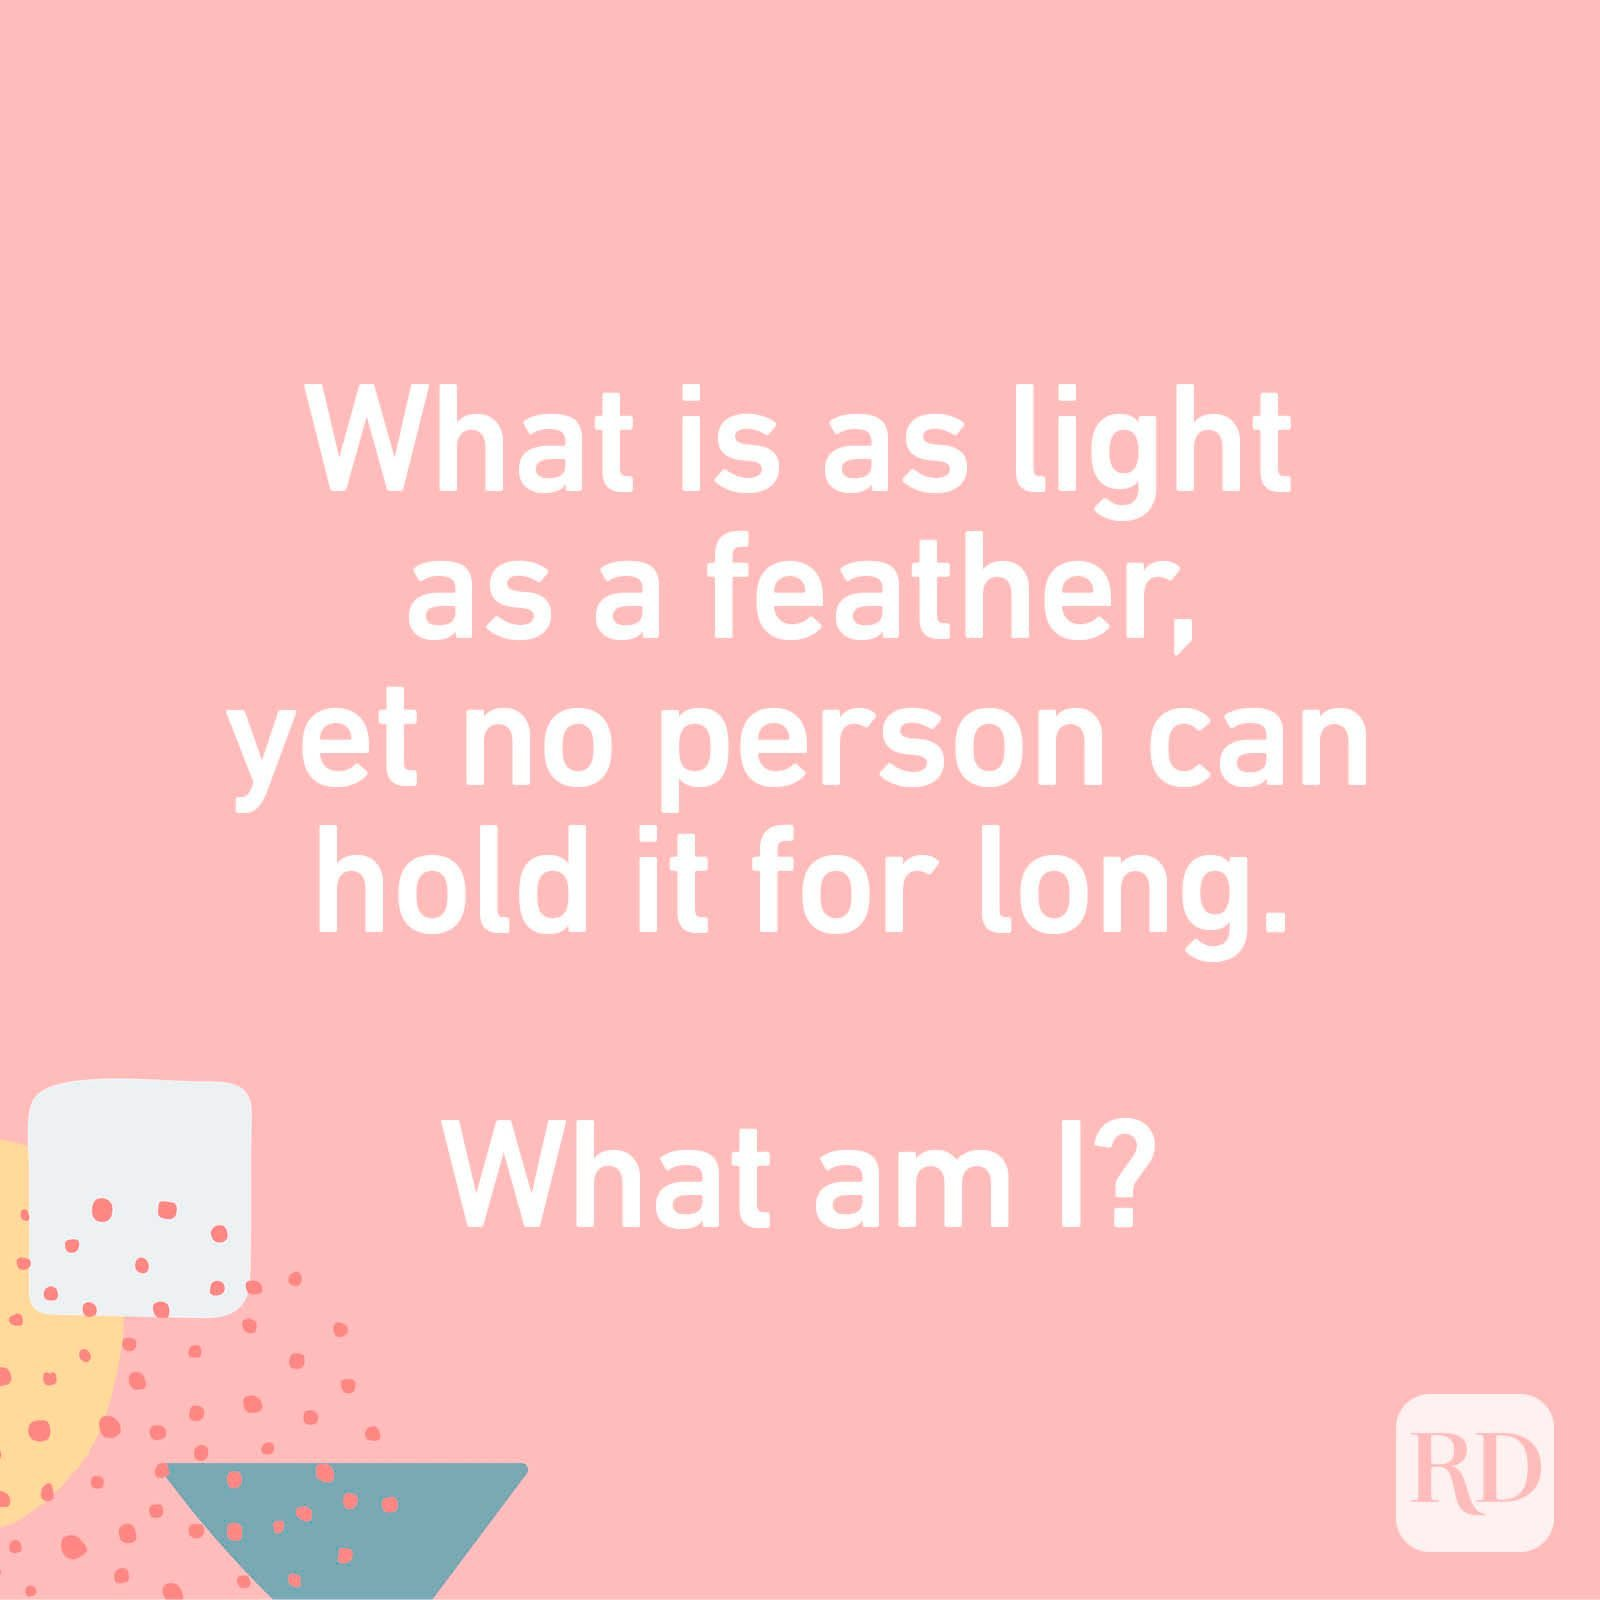 What is as light as a feather, yet no person can hold it for long. What am I?